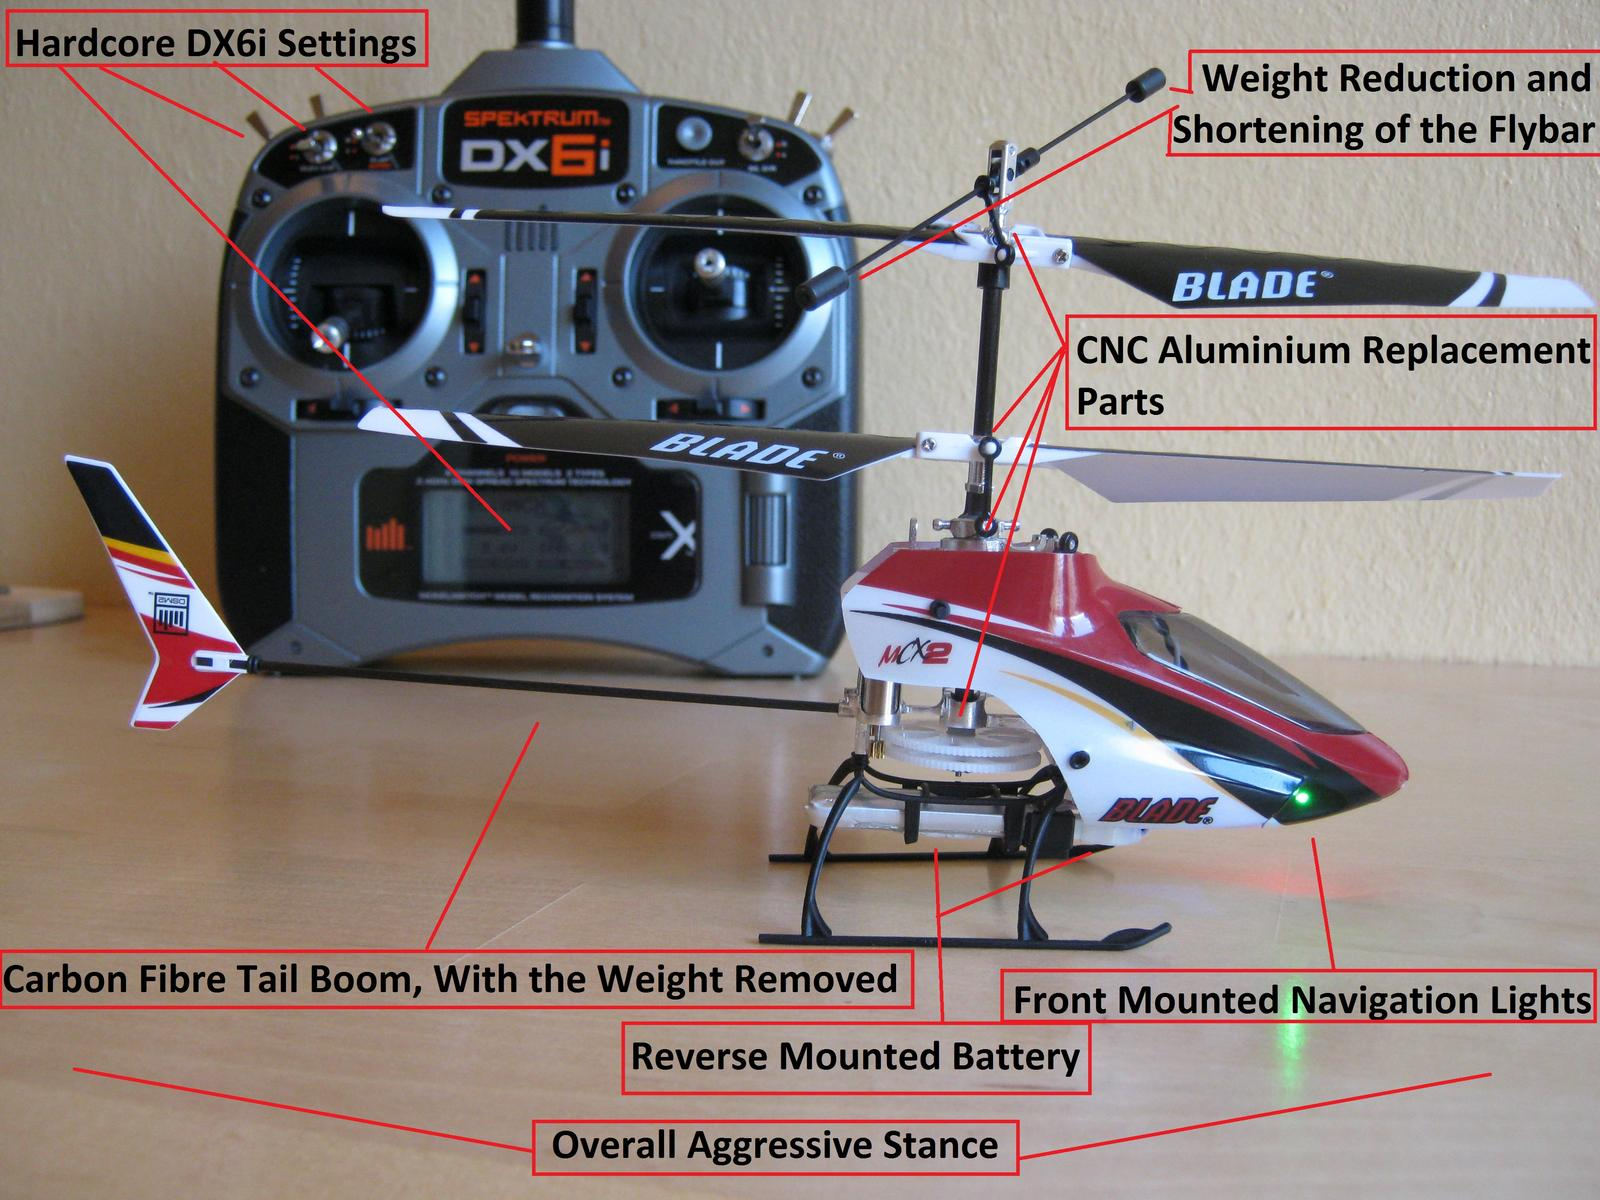 blade mcx2 helicopter with Showthread on Coaxial Rc Helicopters moreover Black Pearl Piratenschiff 3d Laser Cut Modell 2 together with Cat128101 as well Our Review On Blade Msr Rtf together with Blade Mcx.